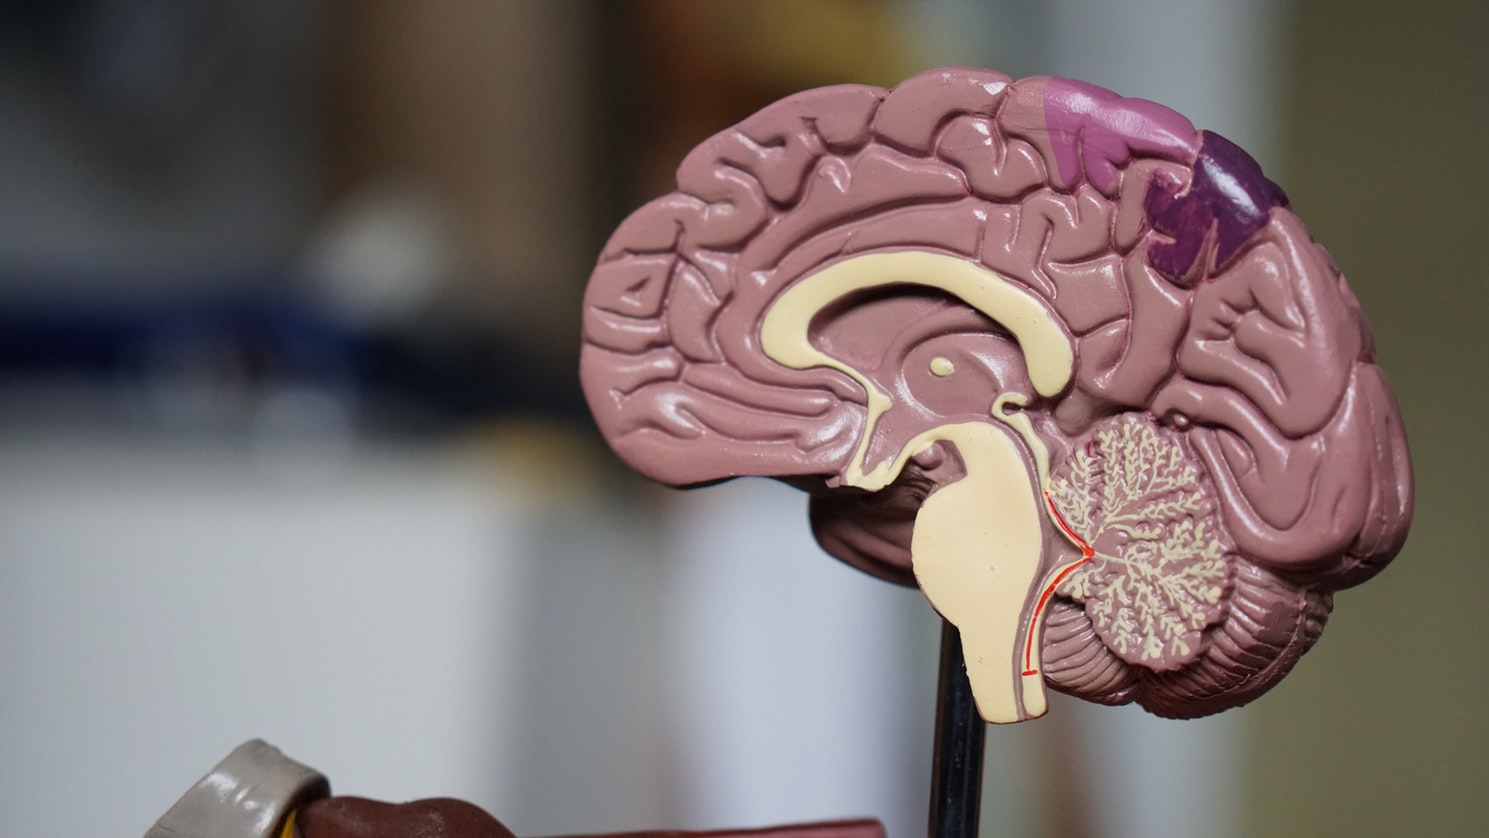 A mold of the brain. Dangerous illnesses for seniors that can occur are strokes.